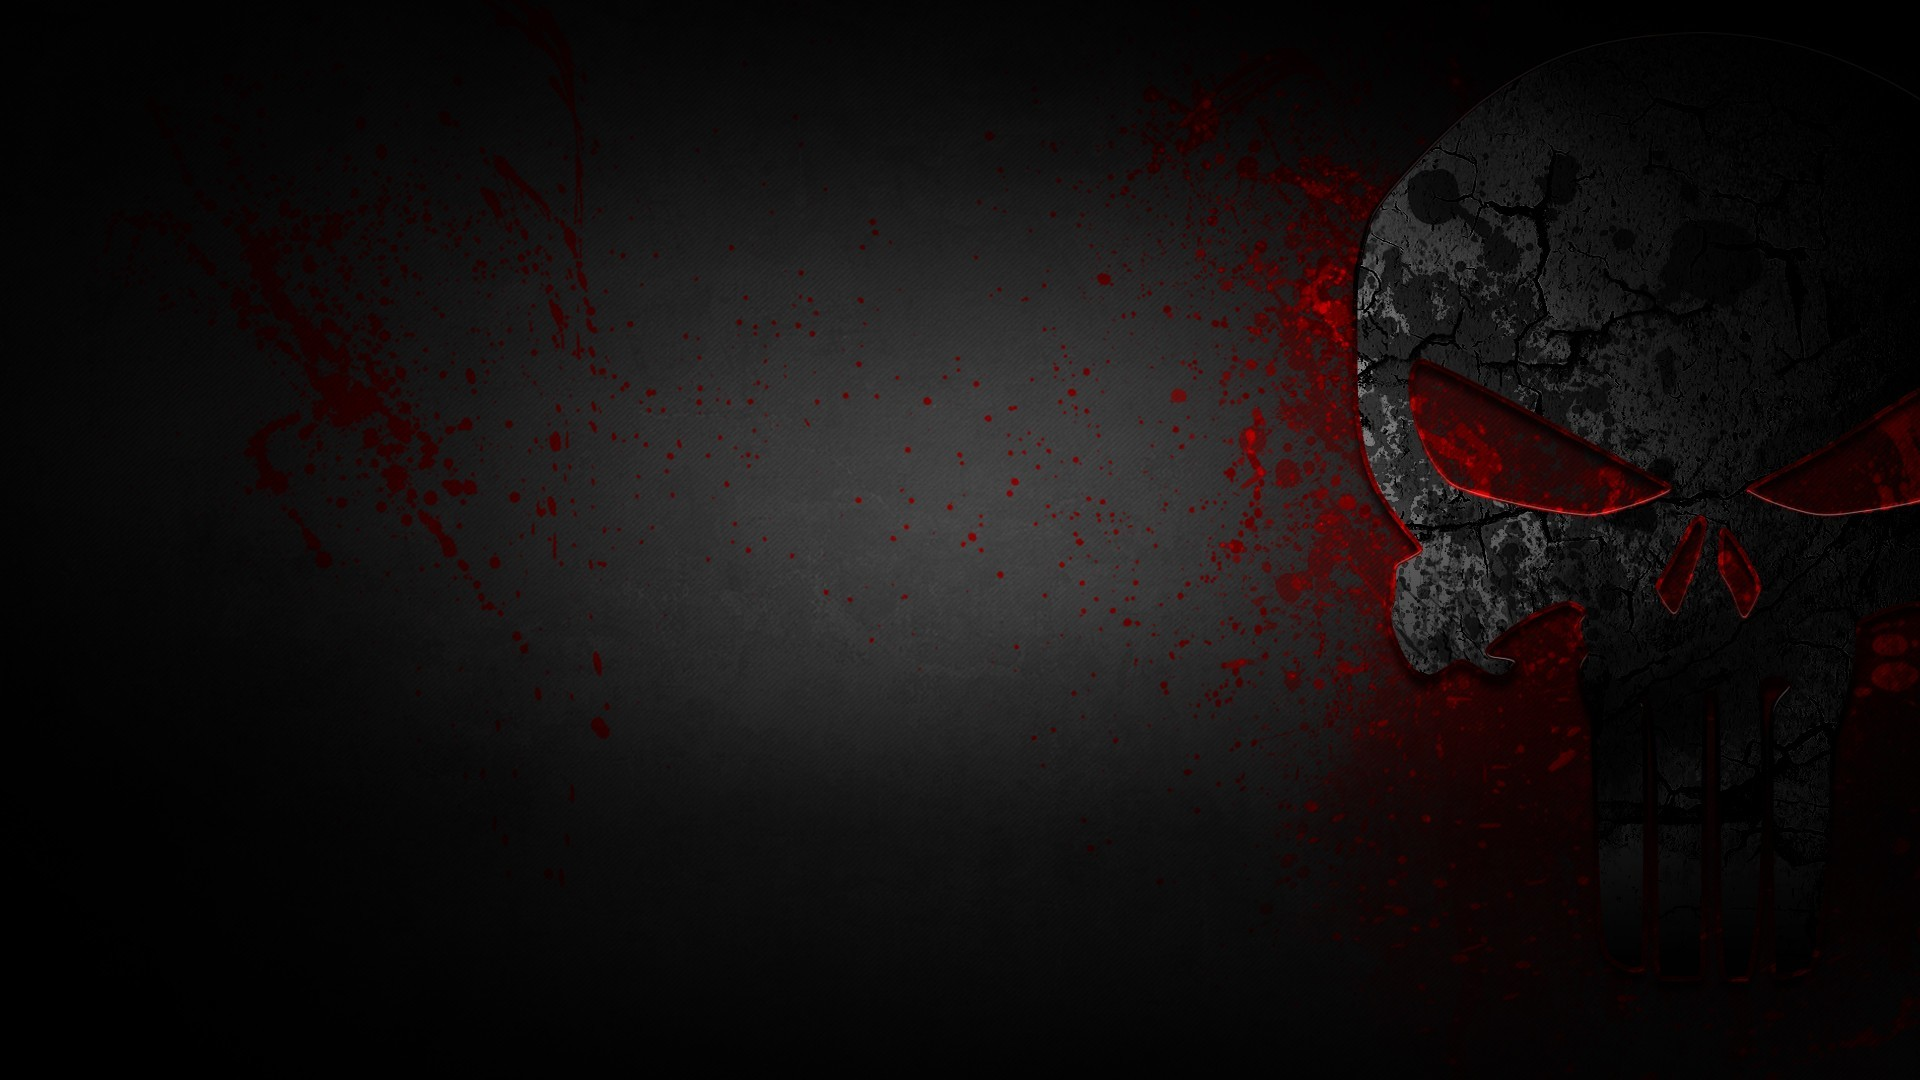 1920x1080 The Punisher HD Wallpapers Backgrounds Wallpaper 1920×1080 Punisher  Backgrounds (37 Wallpapers) |